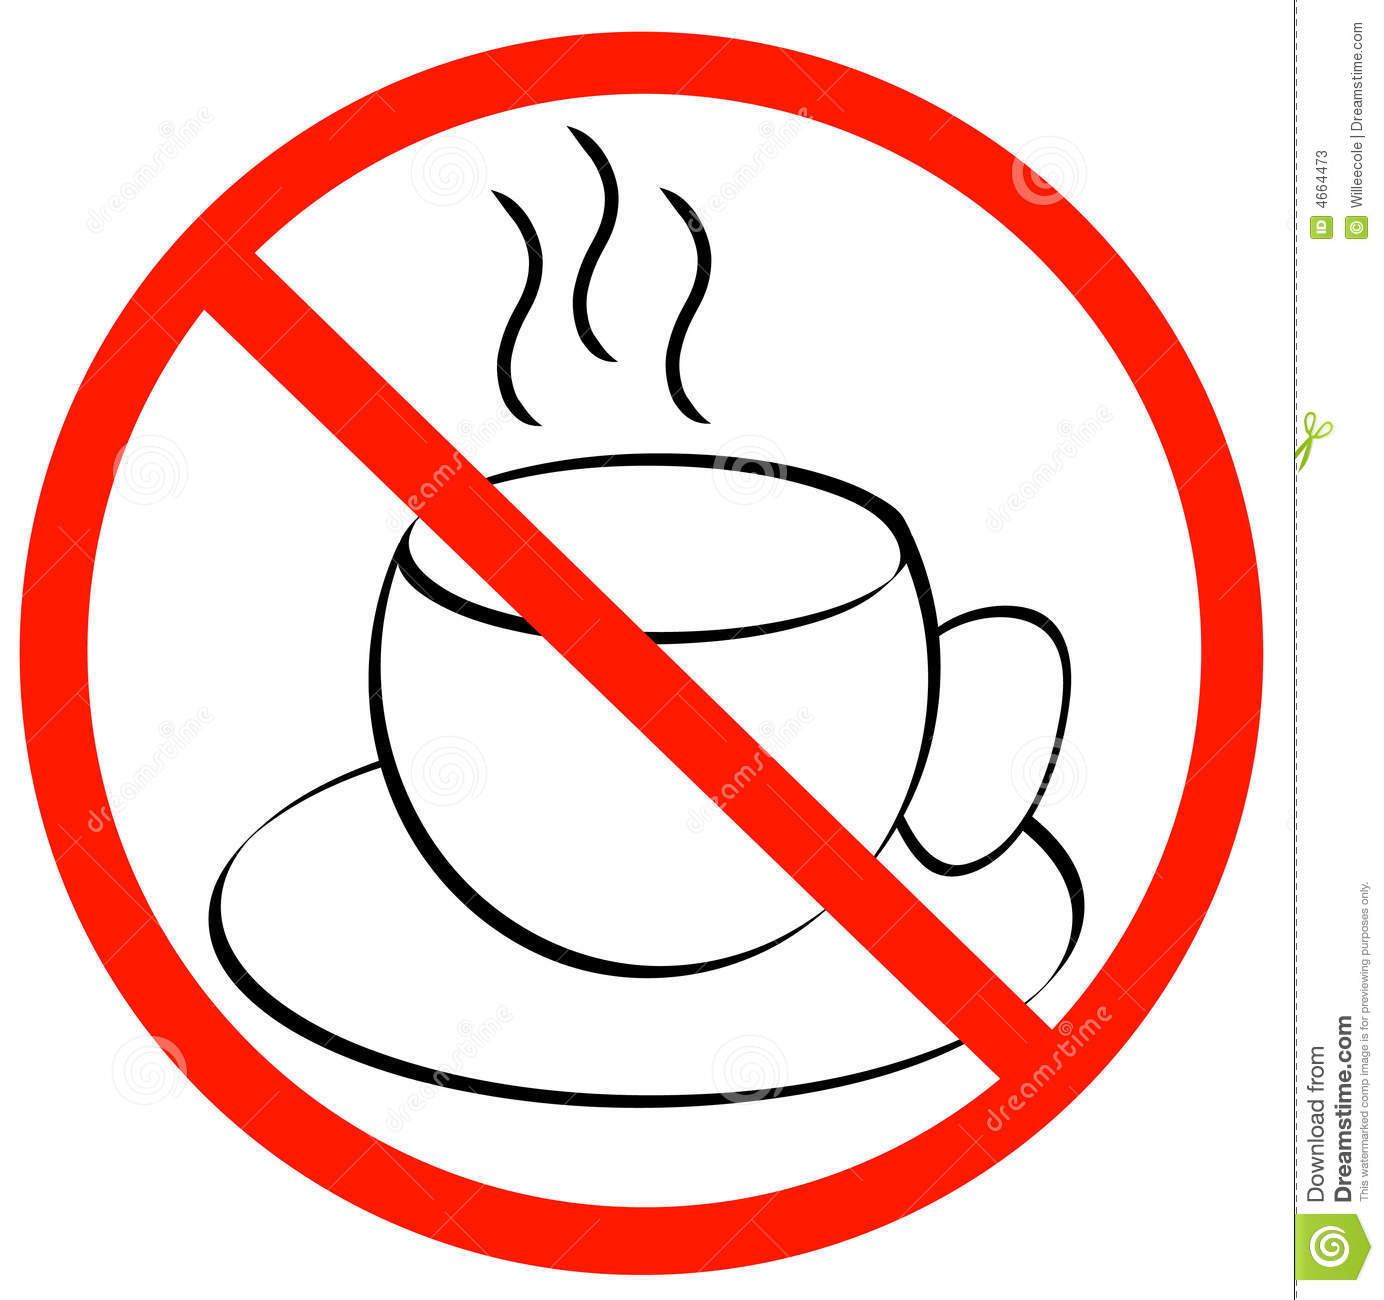 No coffee breaks - coffee mug with red with not allowed symbol ...: www.dreamstime.com/stock-photos-no-coffee-breaks-allowed-image4664473